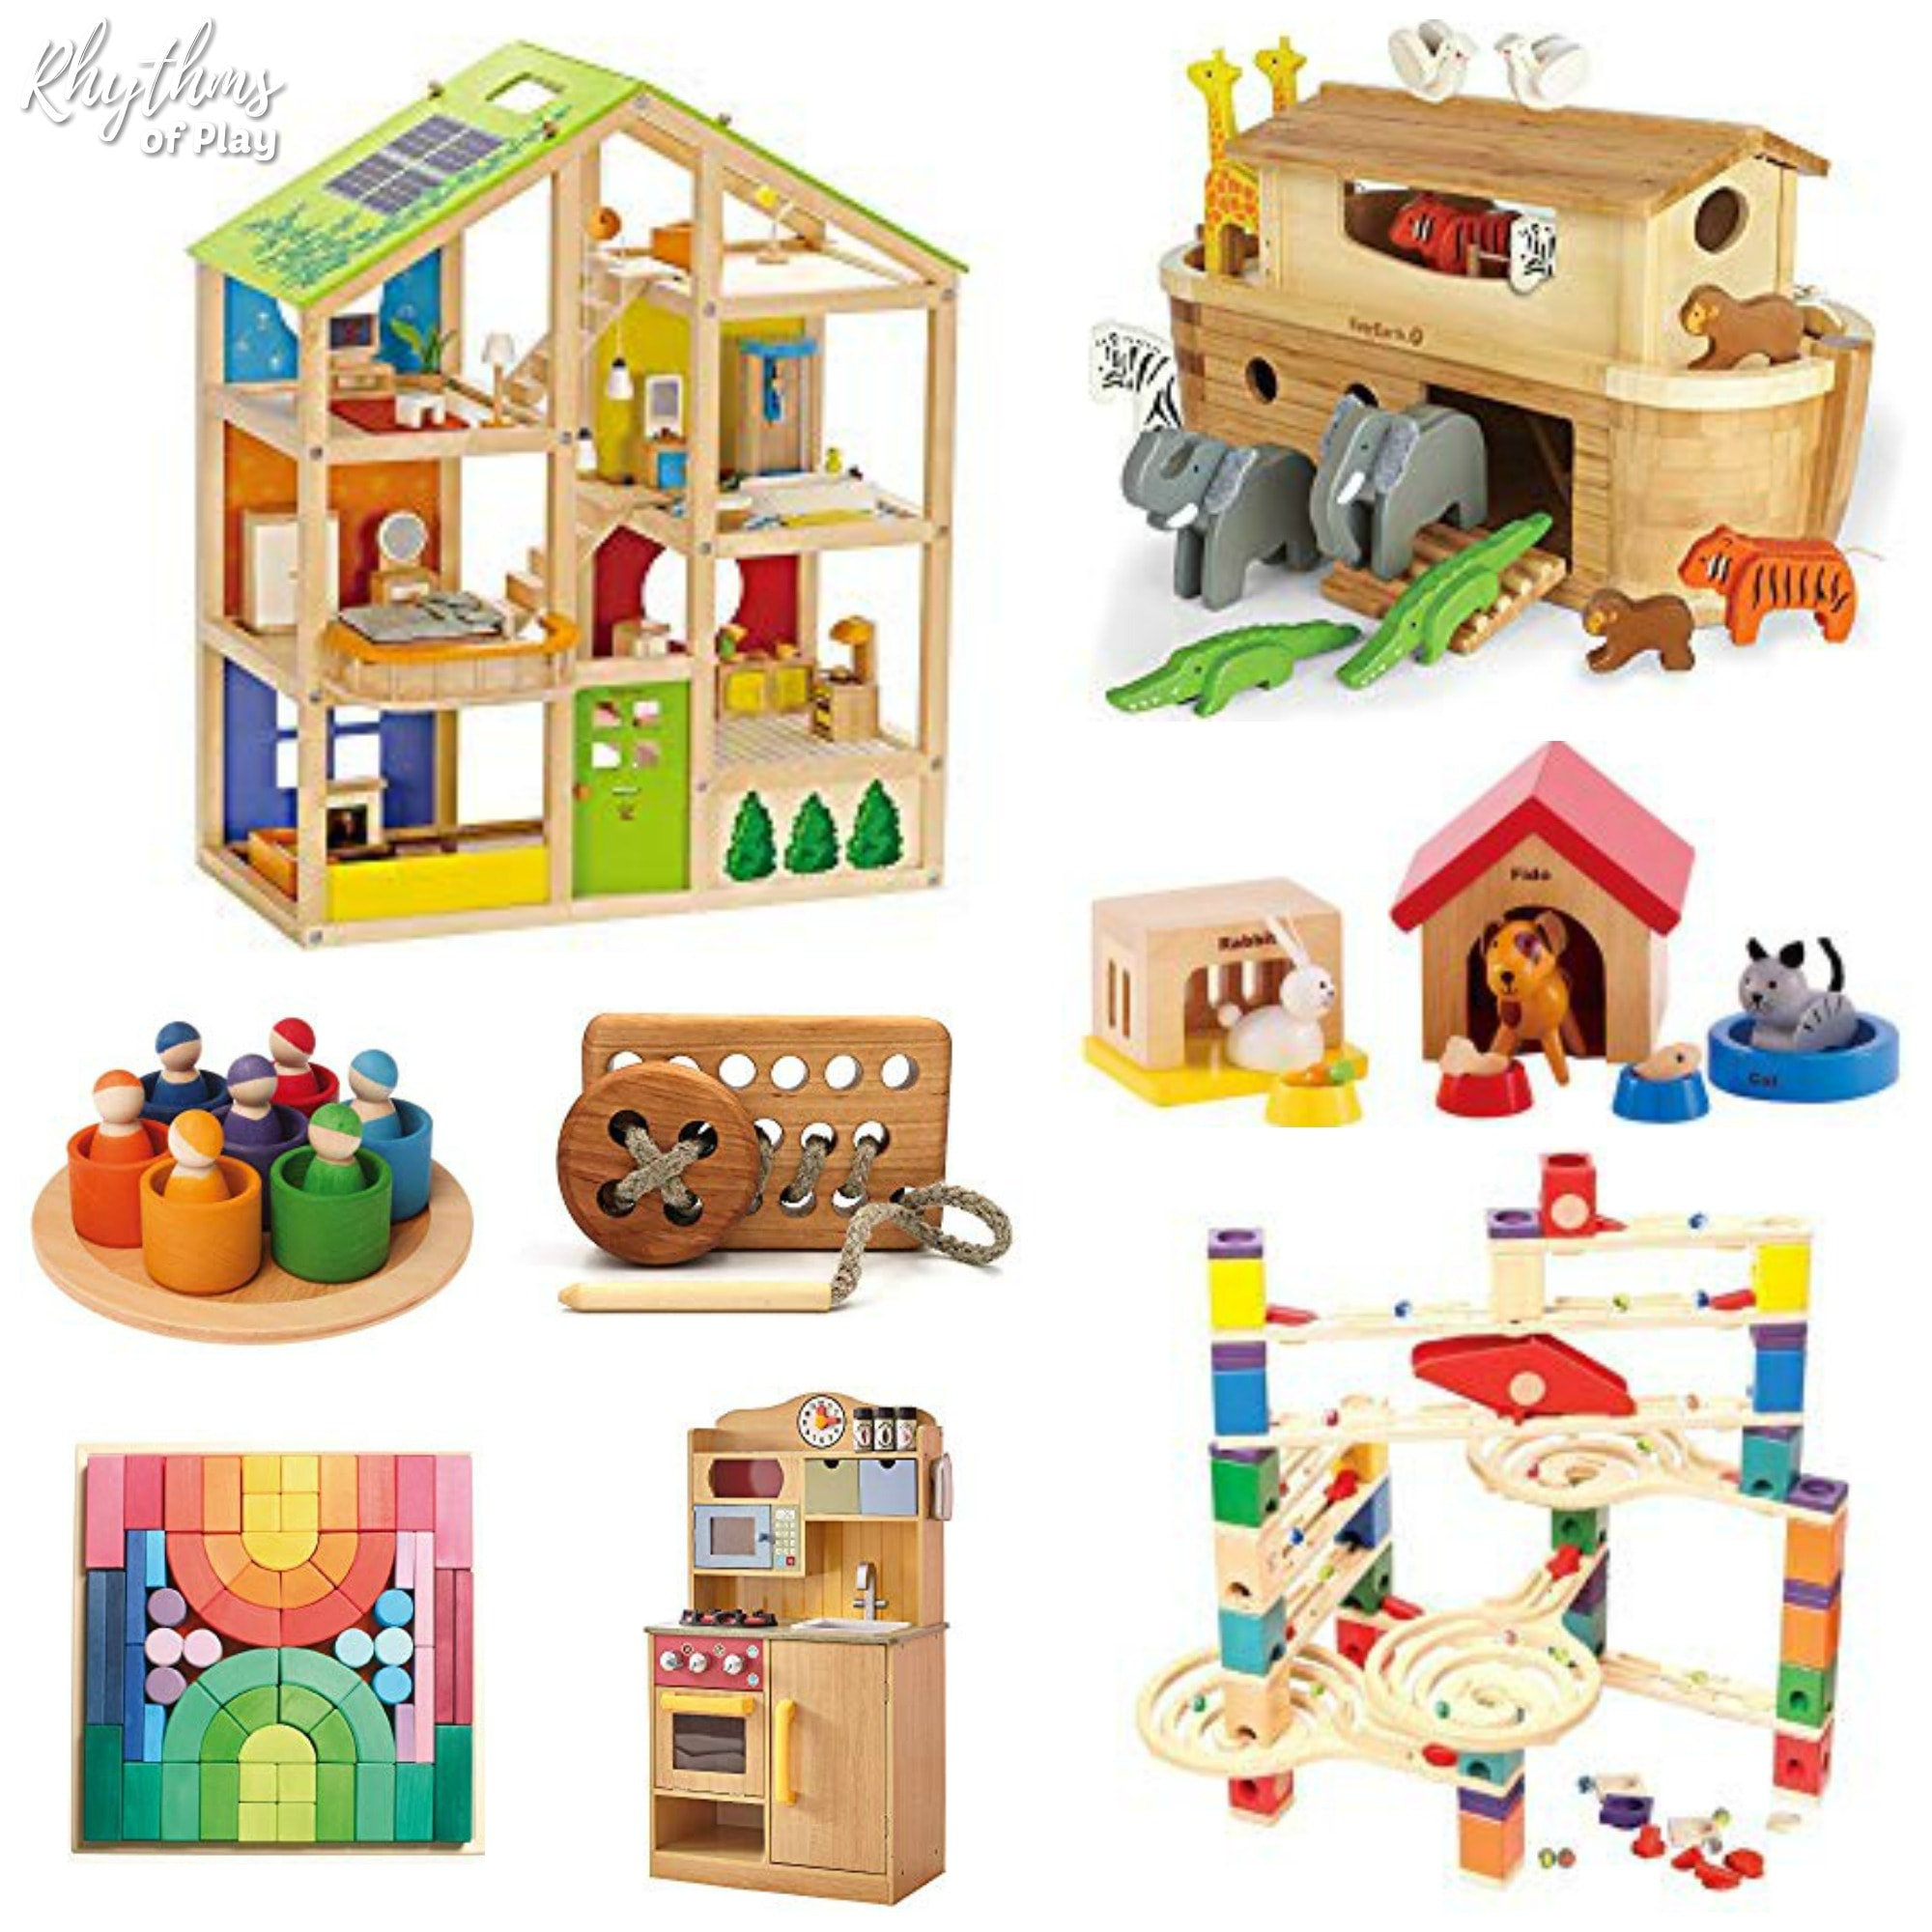 Best natural toys for preschoolers and how they benefit development sq